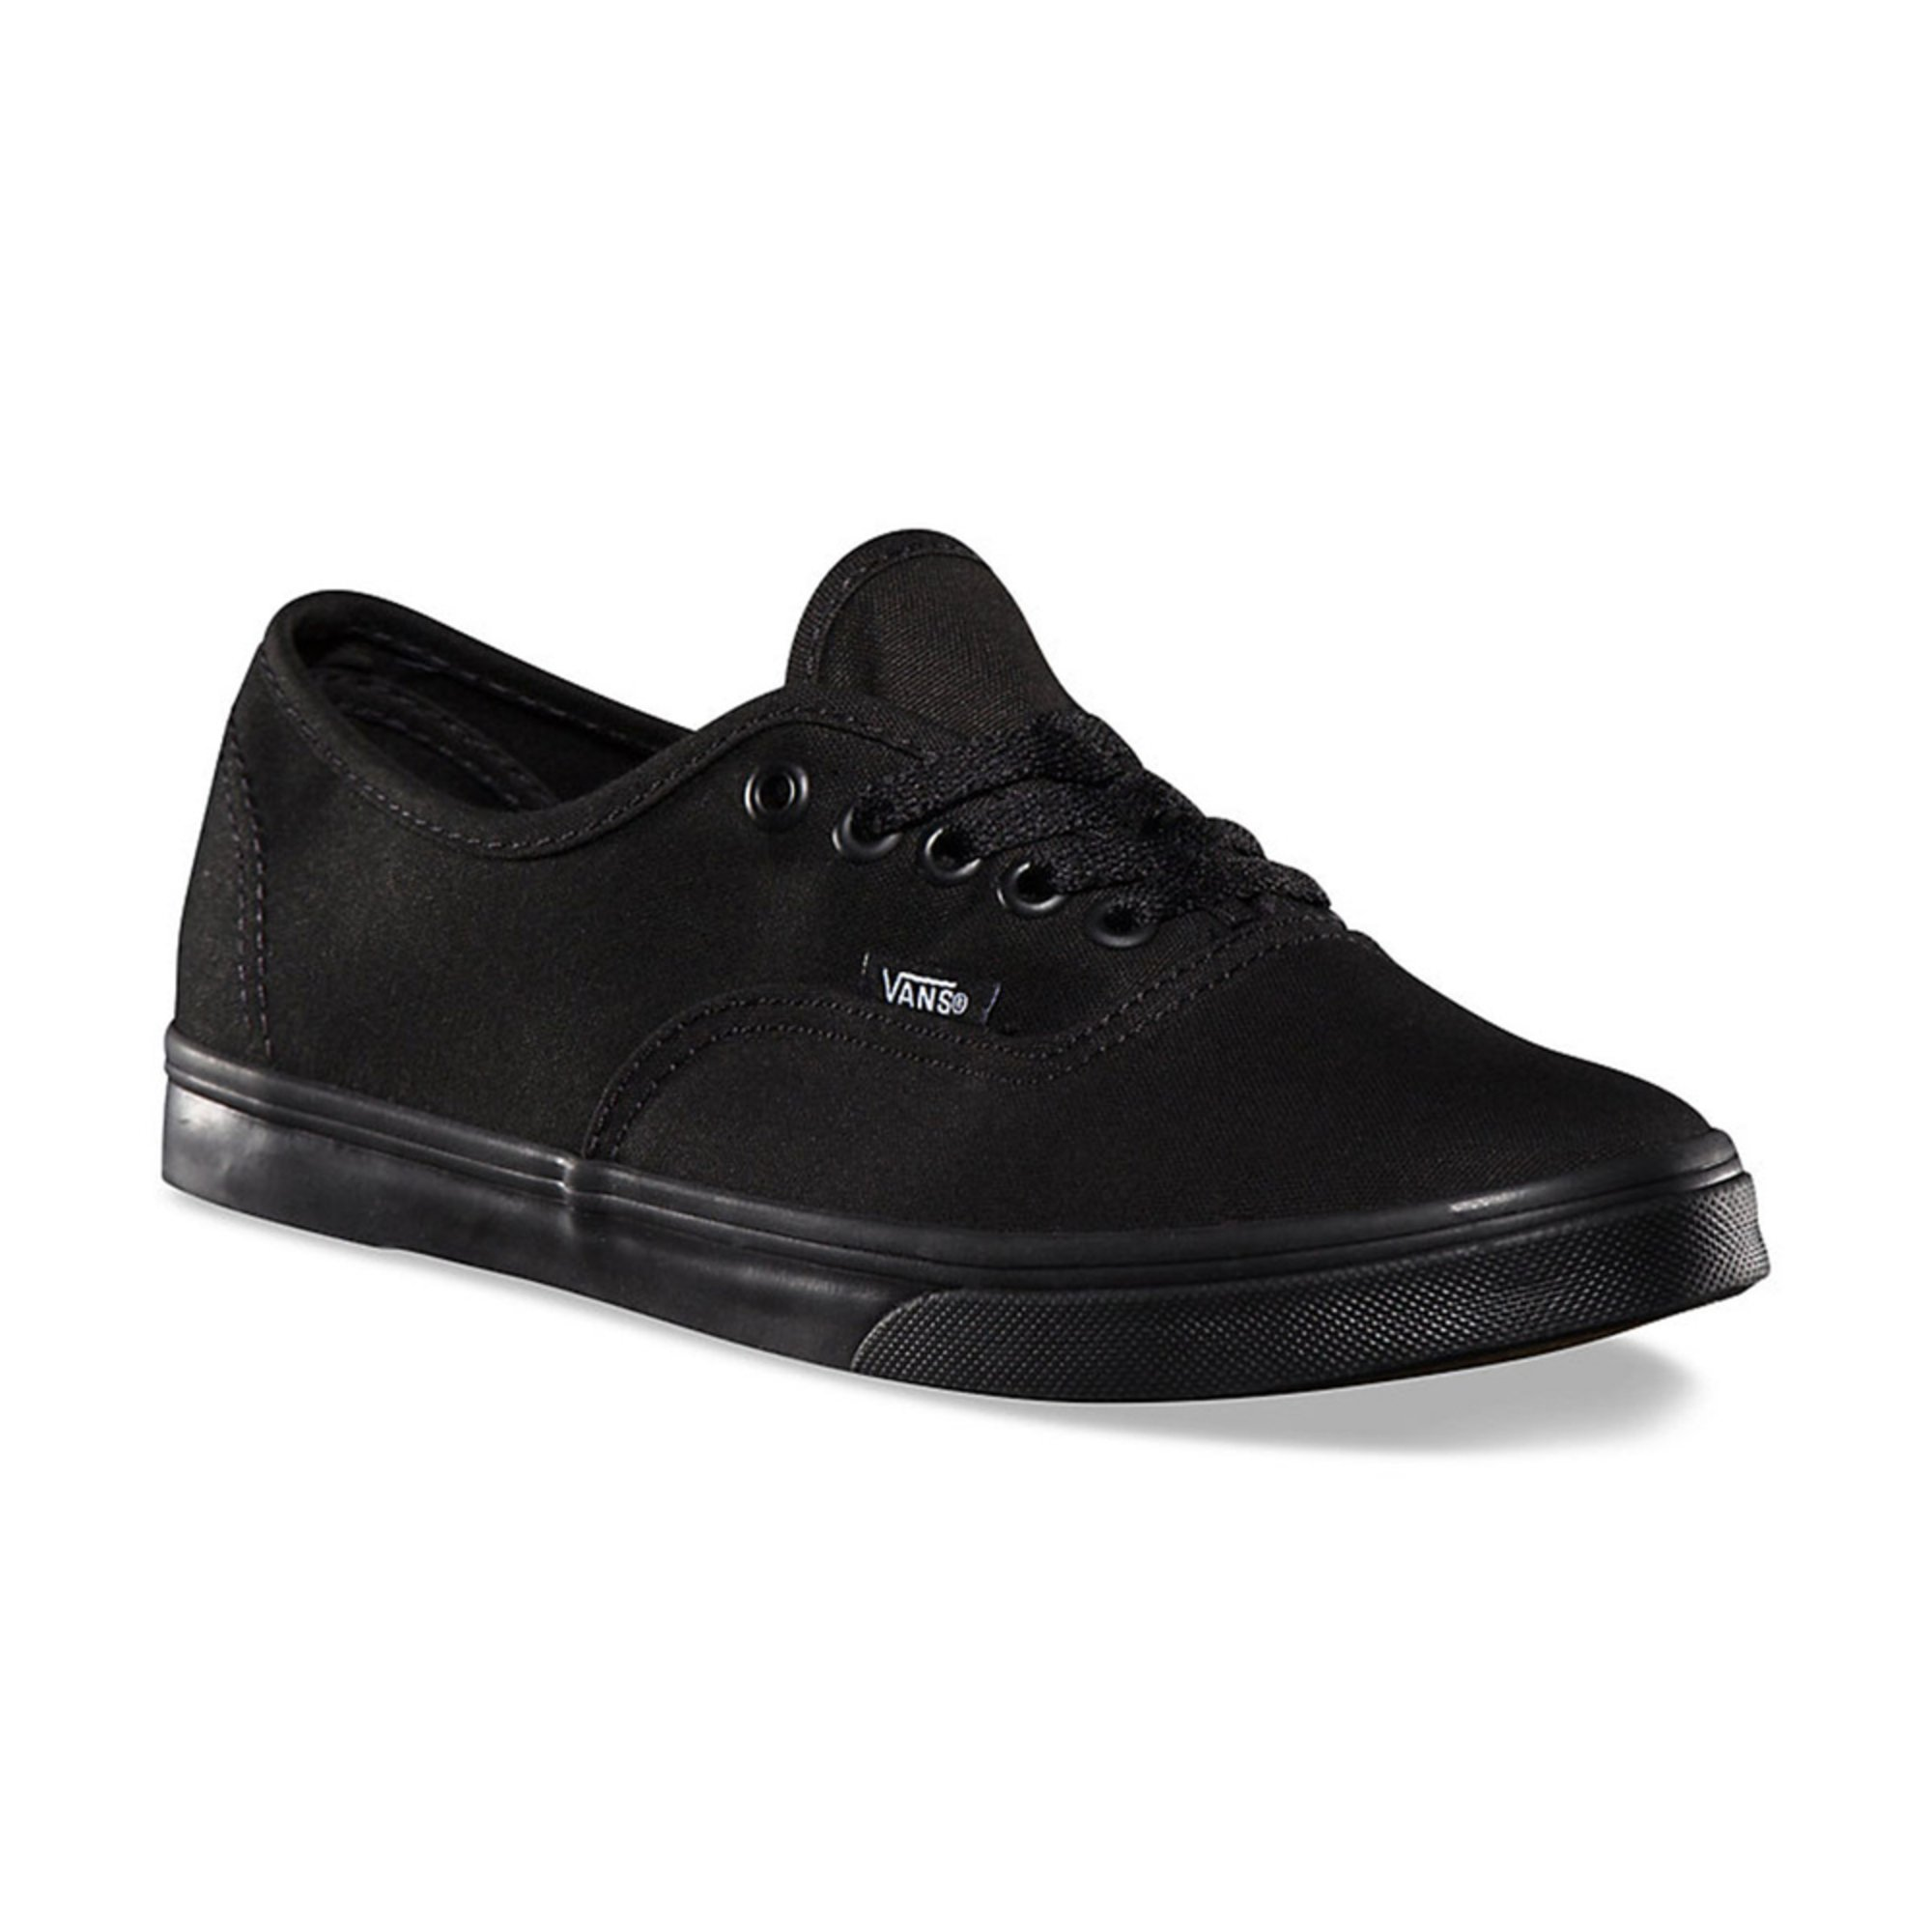 f92f10b9a5 Vans Women s Authentic Lo Pro Skate Shoe. MSRP.  45.00. Product Rating 0  Based on 0 reviews. 001